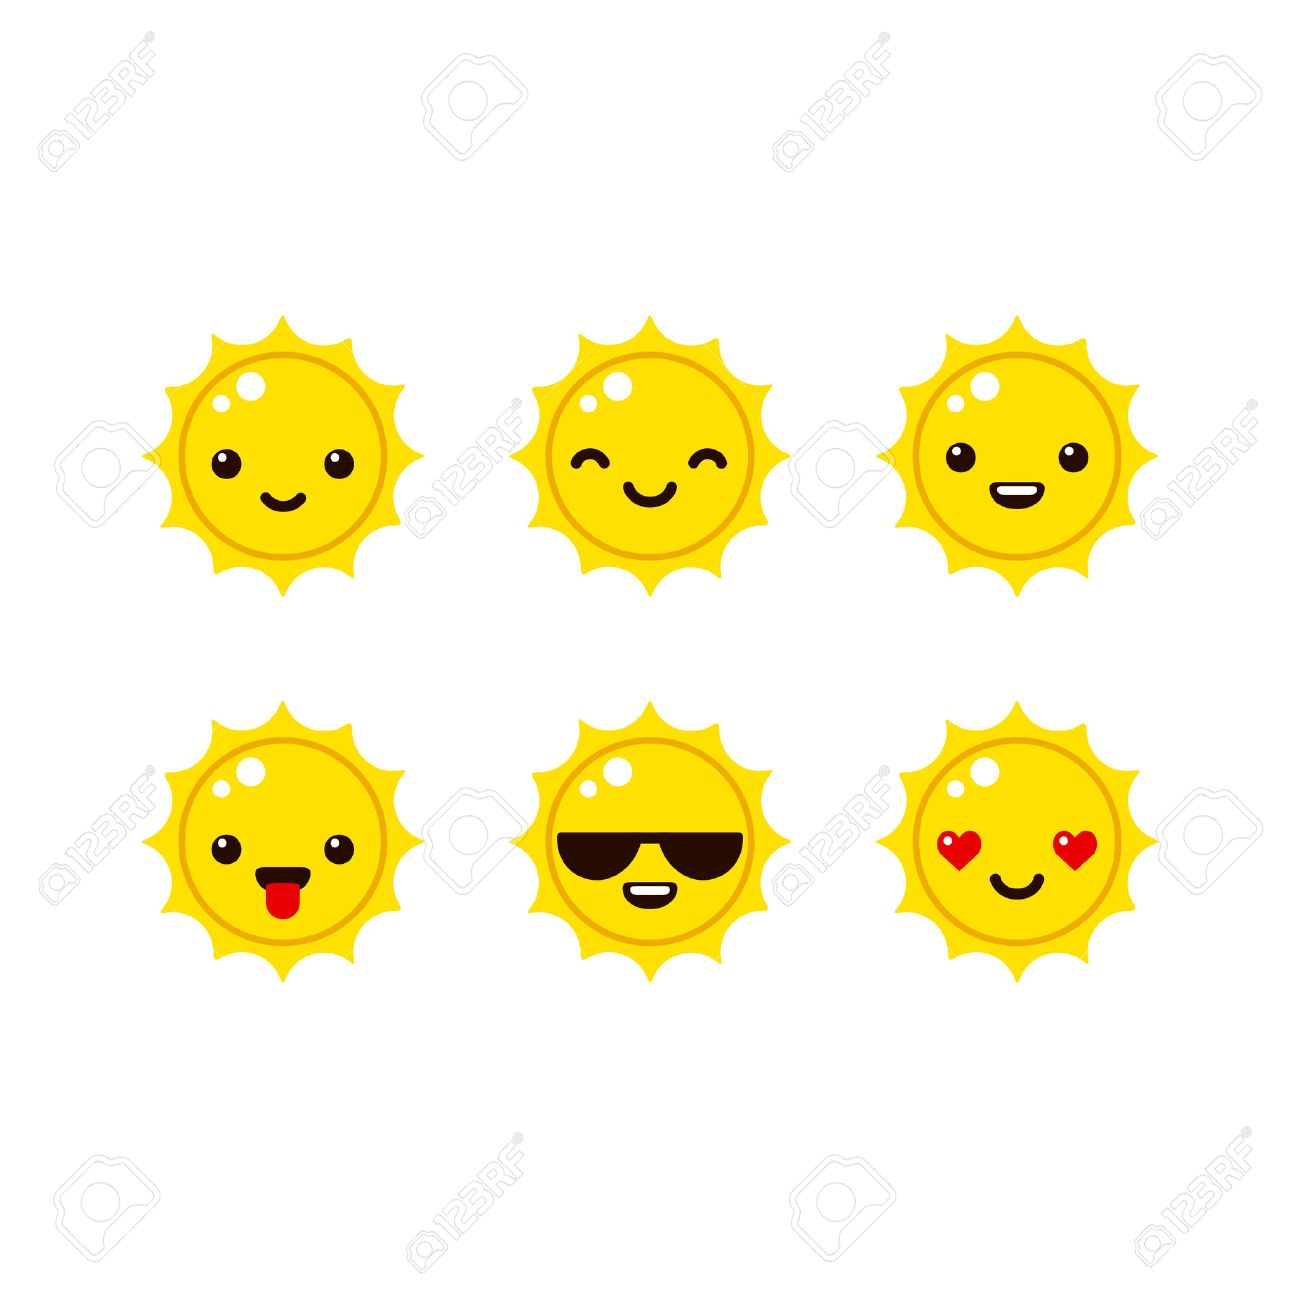 cute sun emoticons in modern vector style. cartoon smiley icons